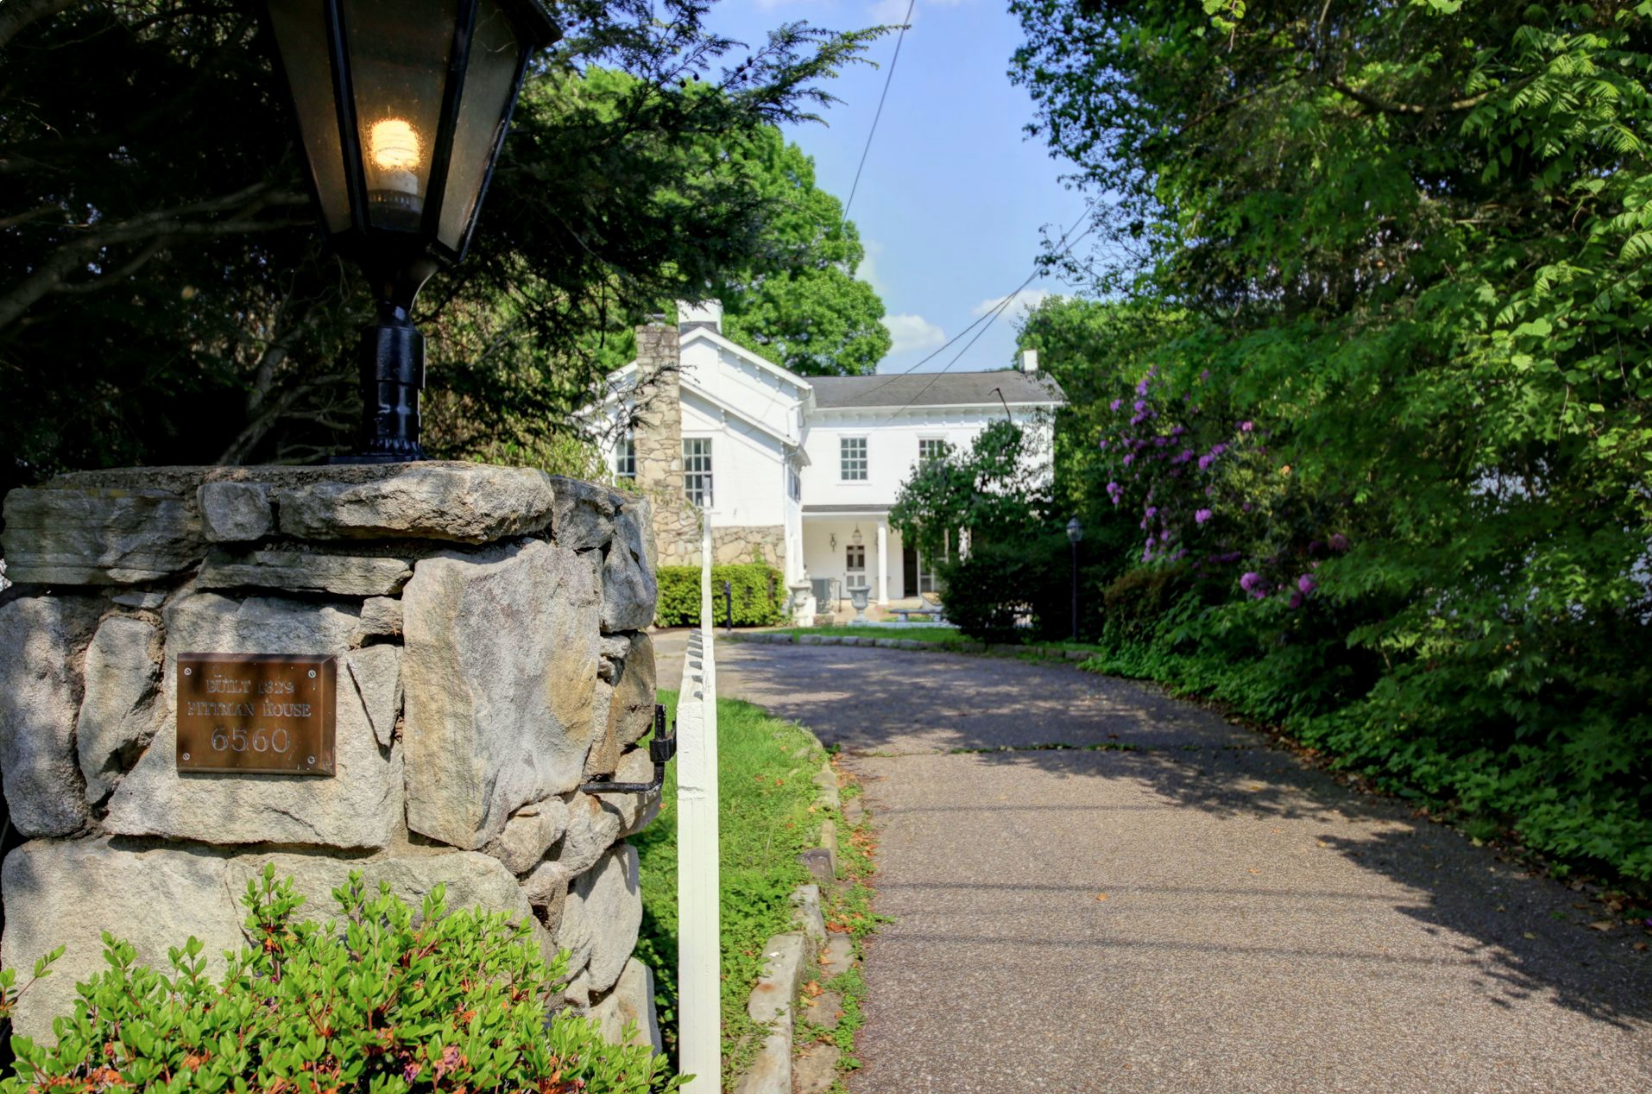 Driveway to the house from Roosevelt Avenue